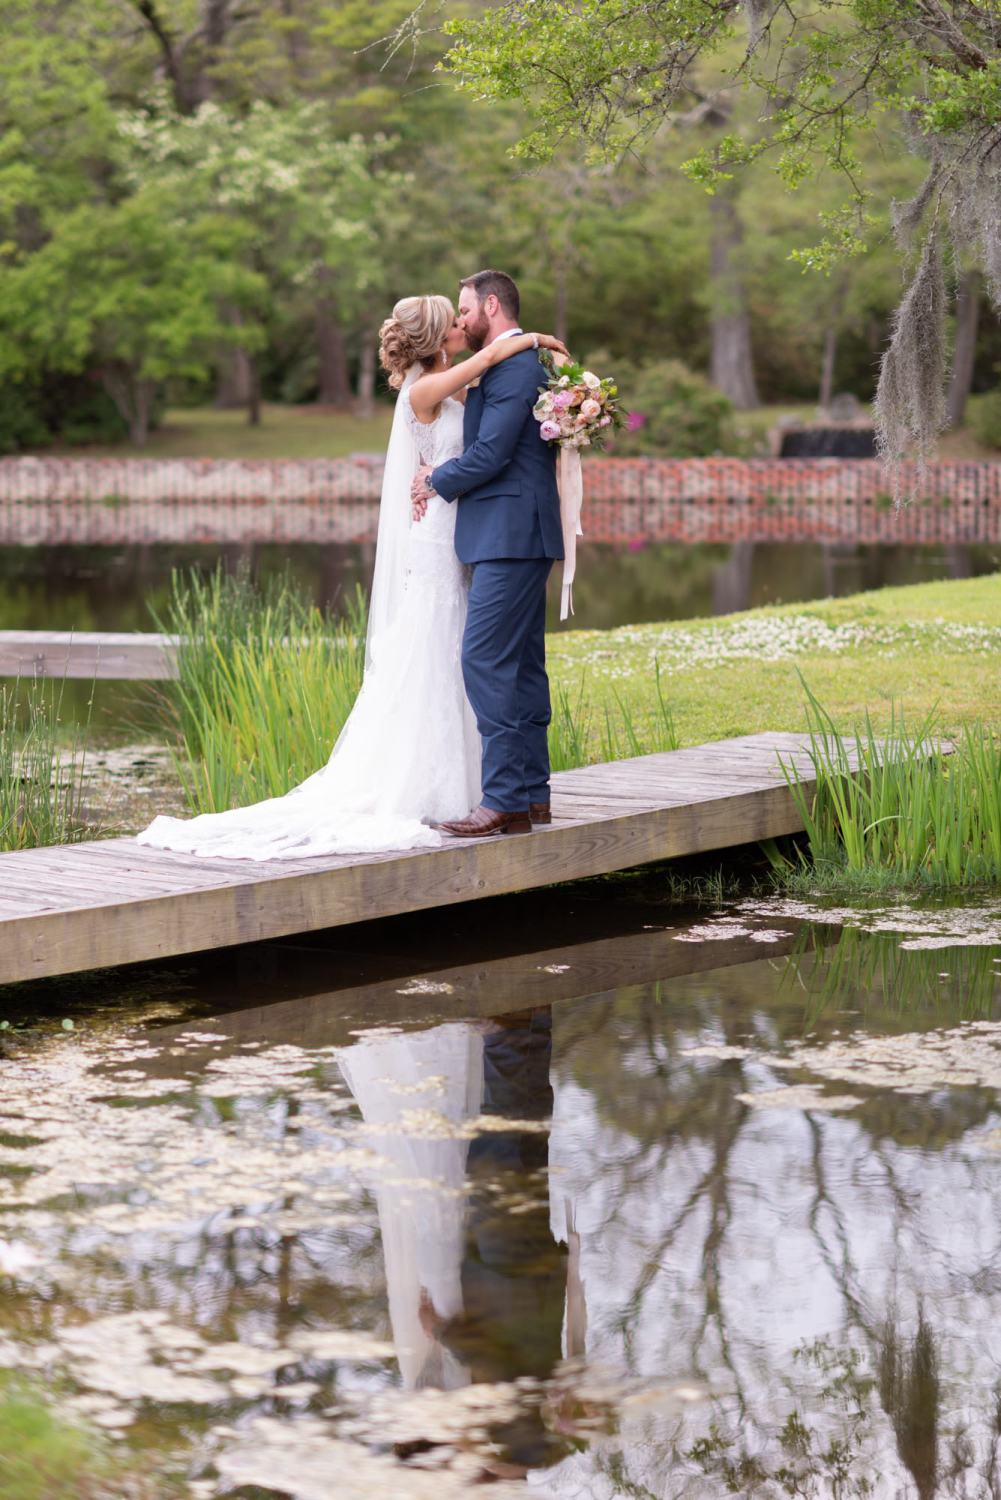 Bride and groom reflecting in the pond by the statue - Brookgreen Gardens